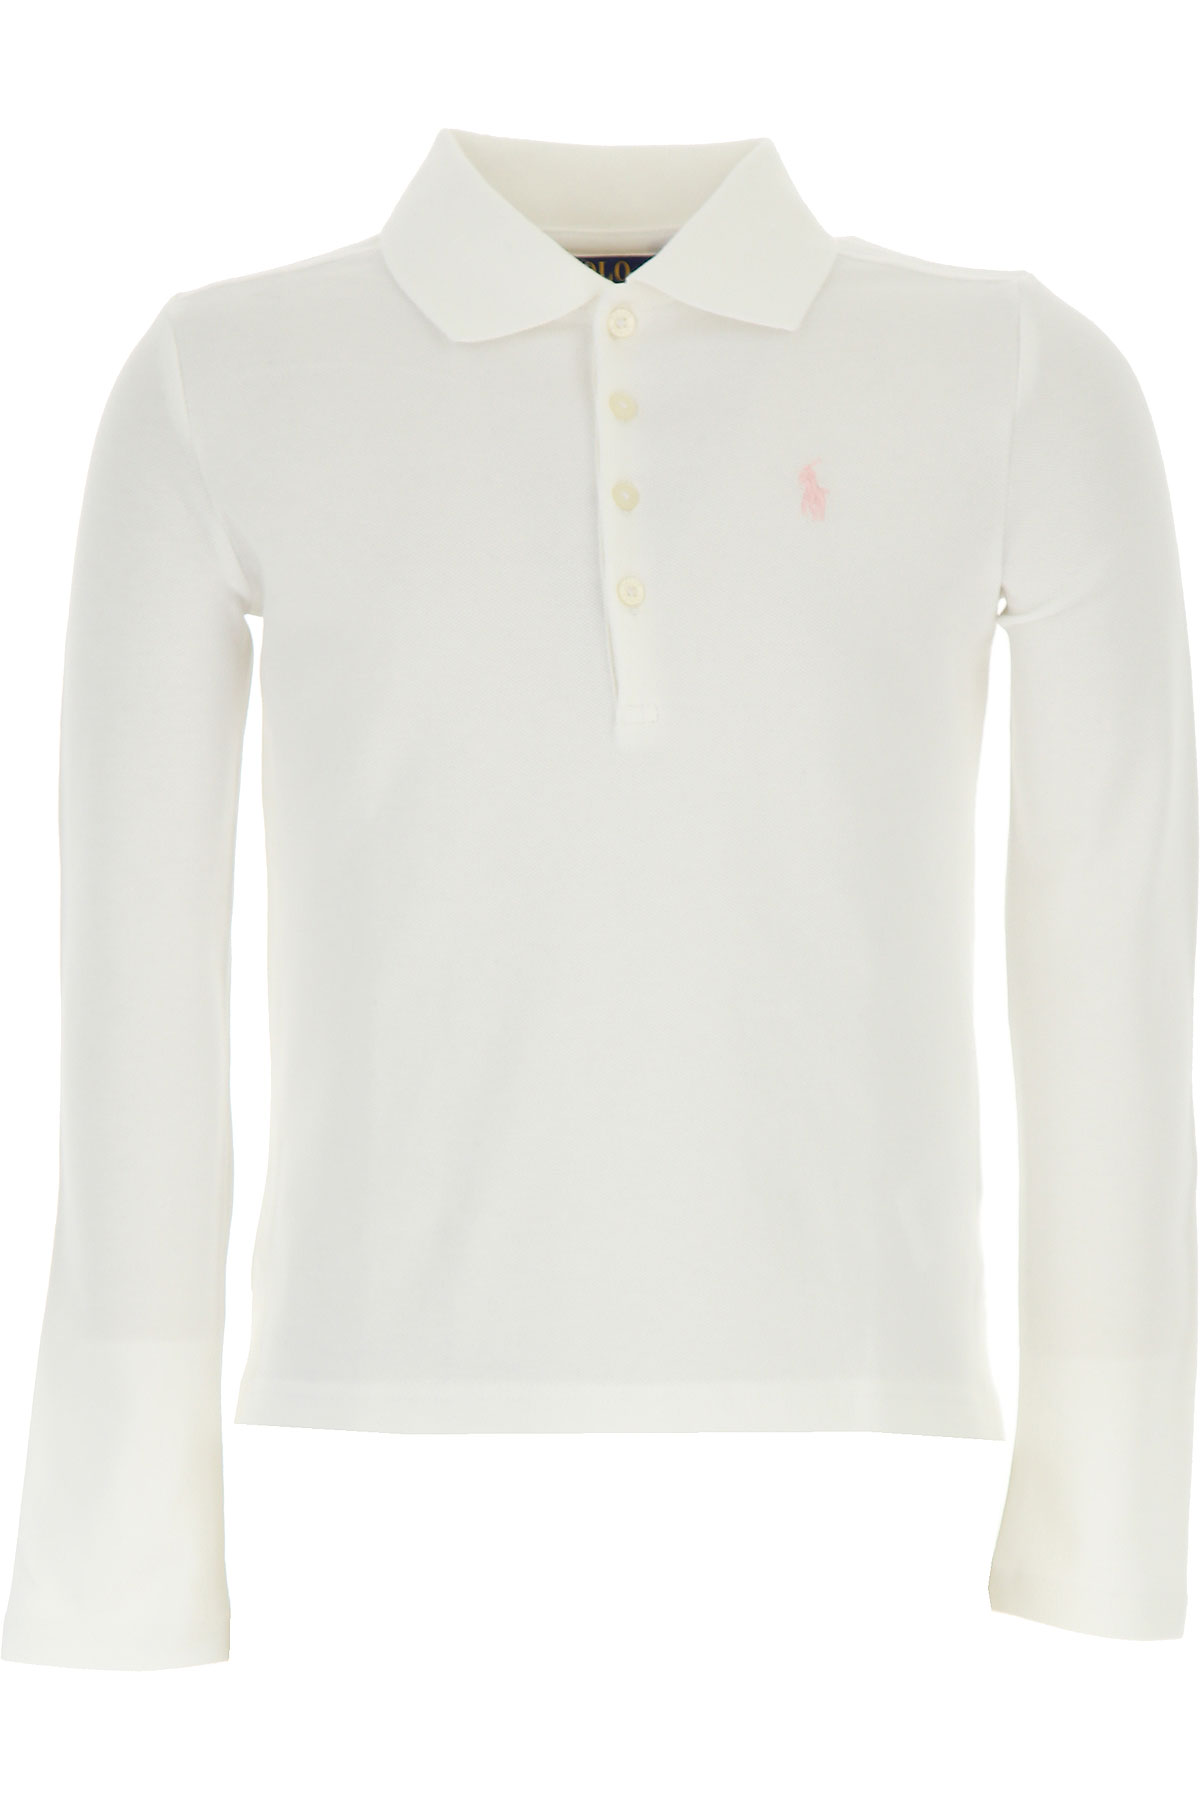 Image of Ralph Lauren Kids Polo Shirt for Girls, White, Cotton, 2017, 2Y 3Y 4Y 5Y 6Y